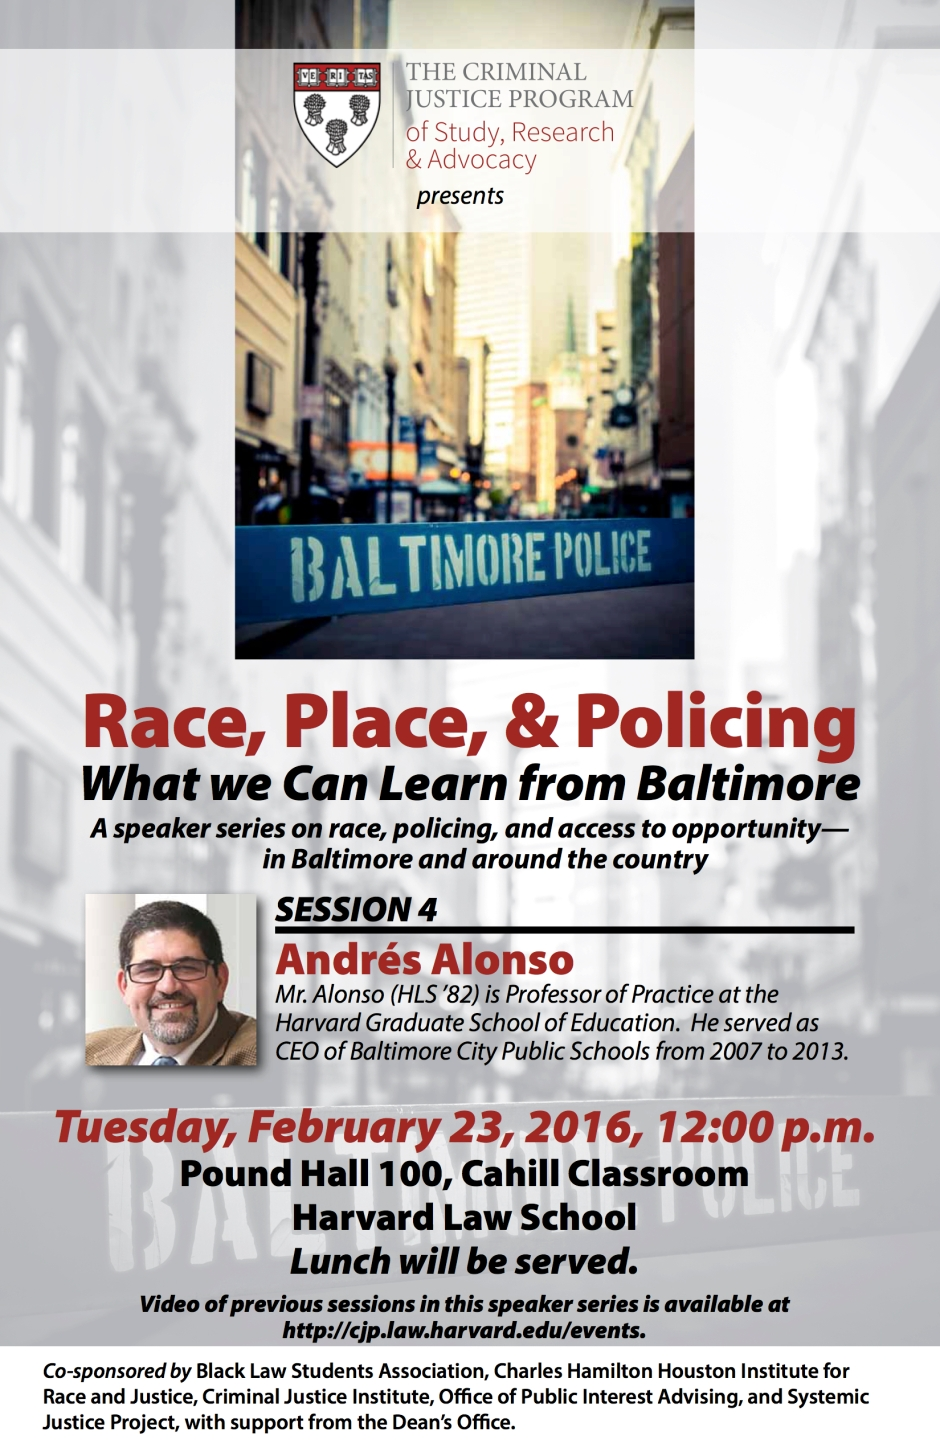 CJPSRA Poster-Baltimore Speaker Series-Alonso[1] copy 2